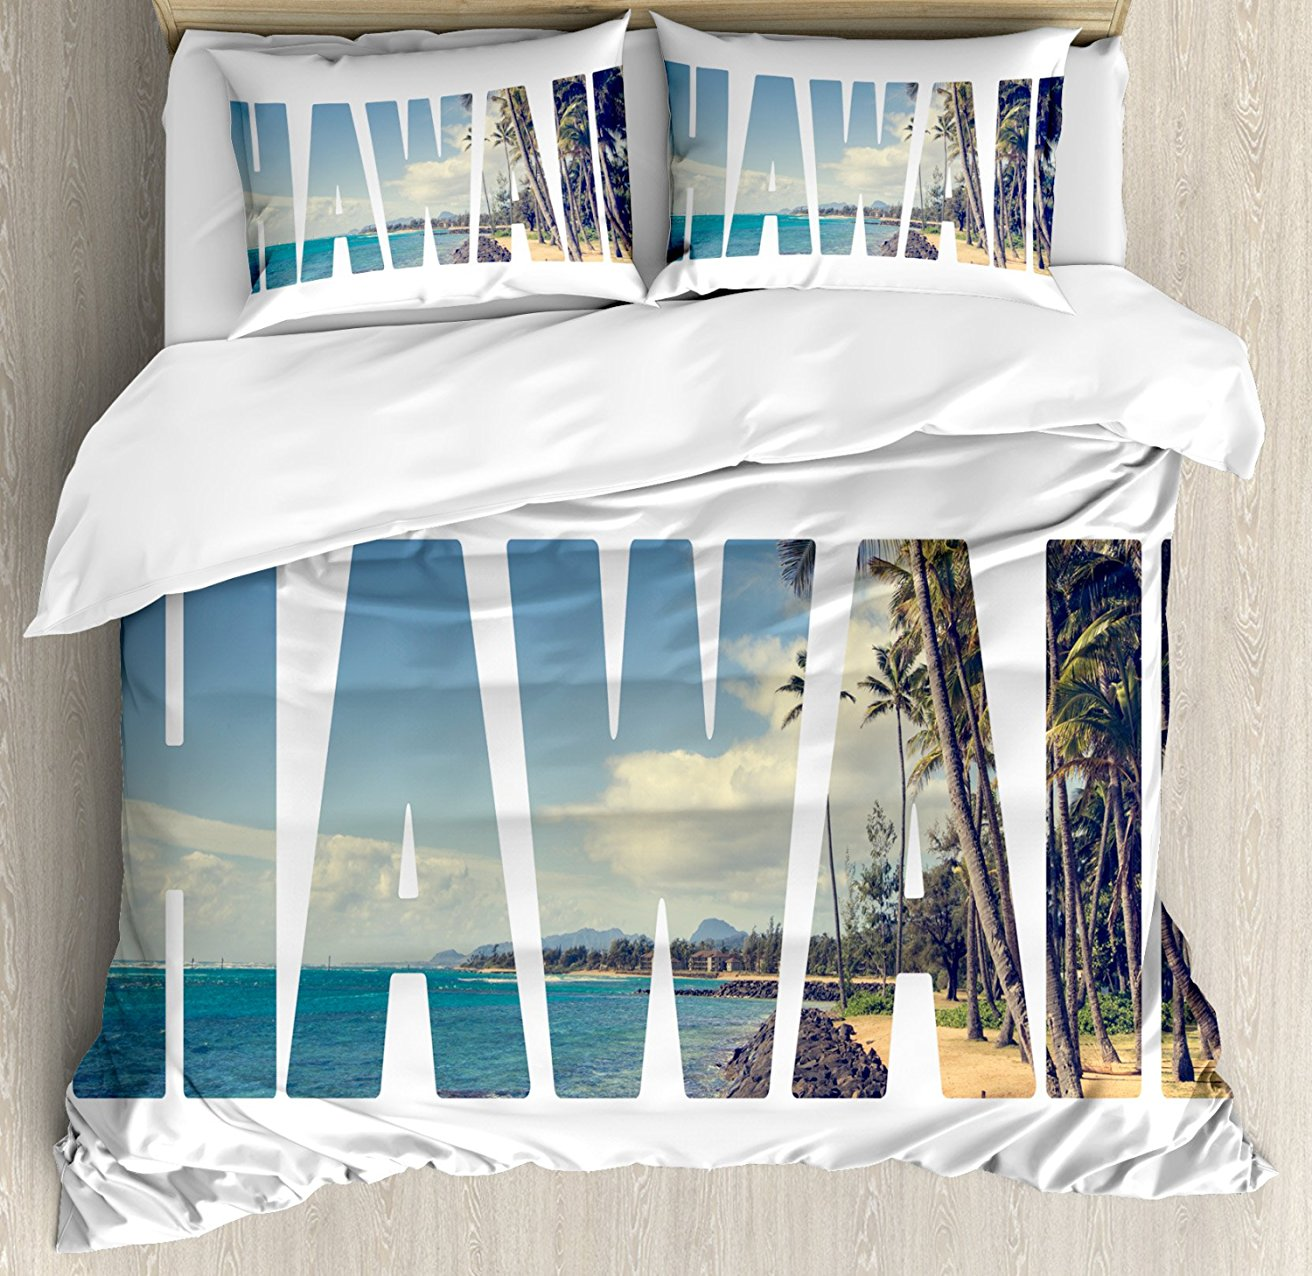 Duvet Cover Set, Word Hawaii with Tropical Island Photo Exotic Popular Places Palm Forest by Ocean, 4 Piece Bedding Set